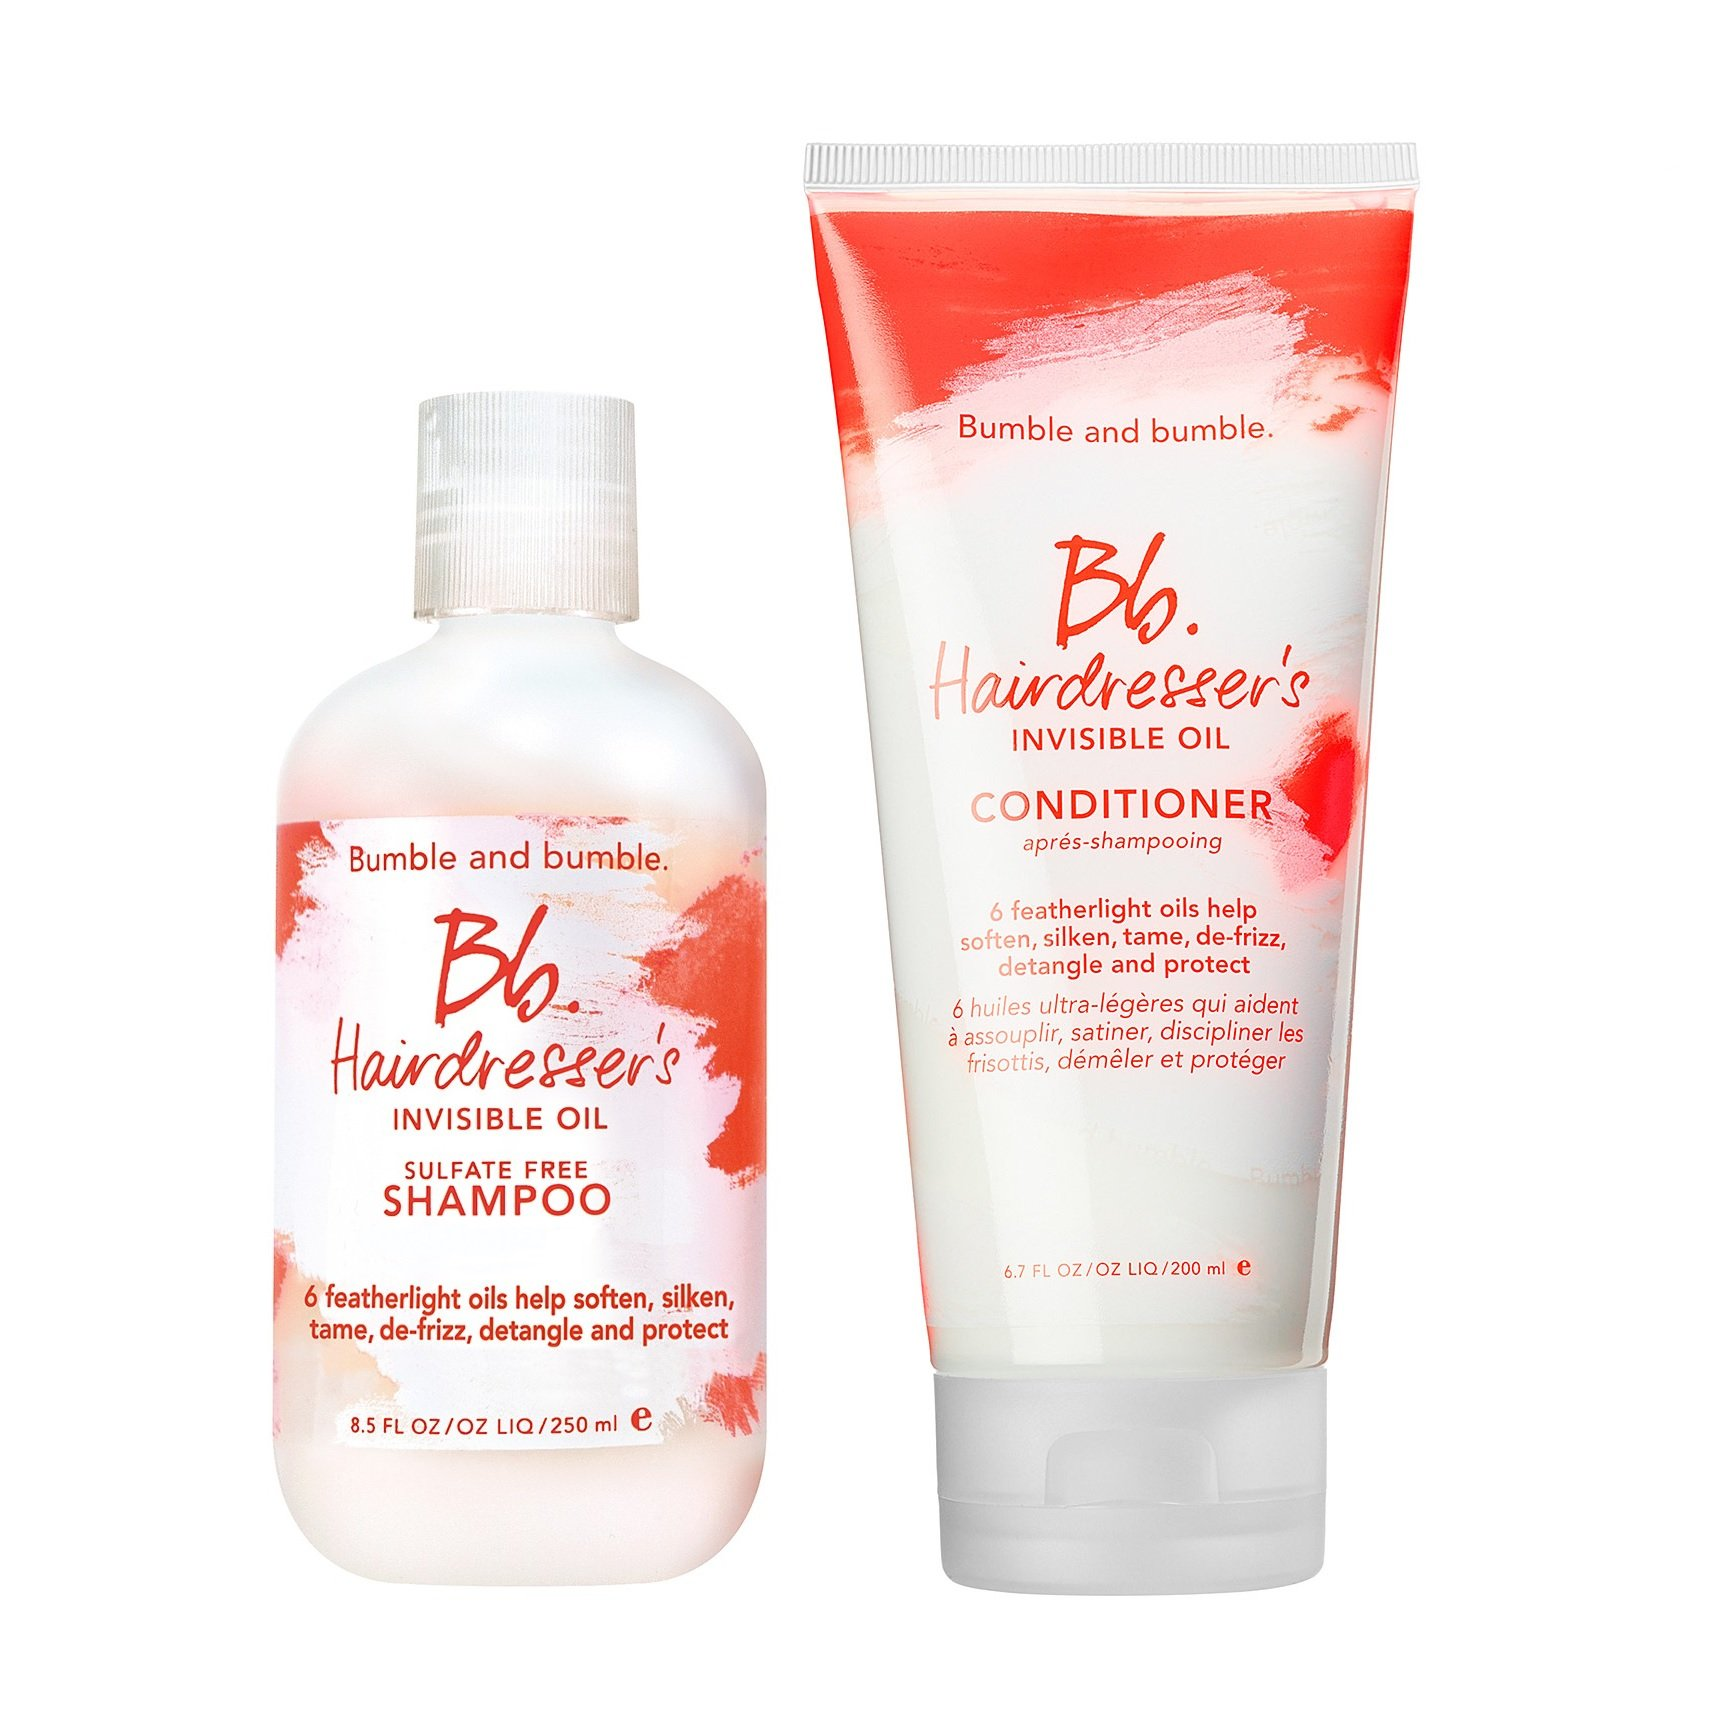 Bumble and Bumble Hairdresser's Invisible Oil Sulfate Free Shampoo & Conditioner Duo 8.5 oz by Bumble and Bumble